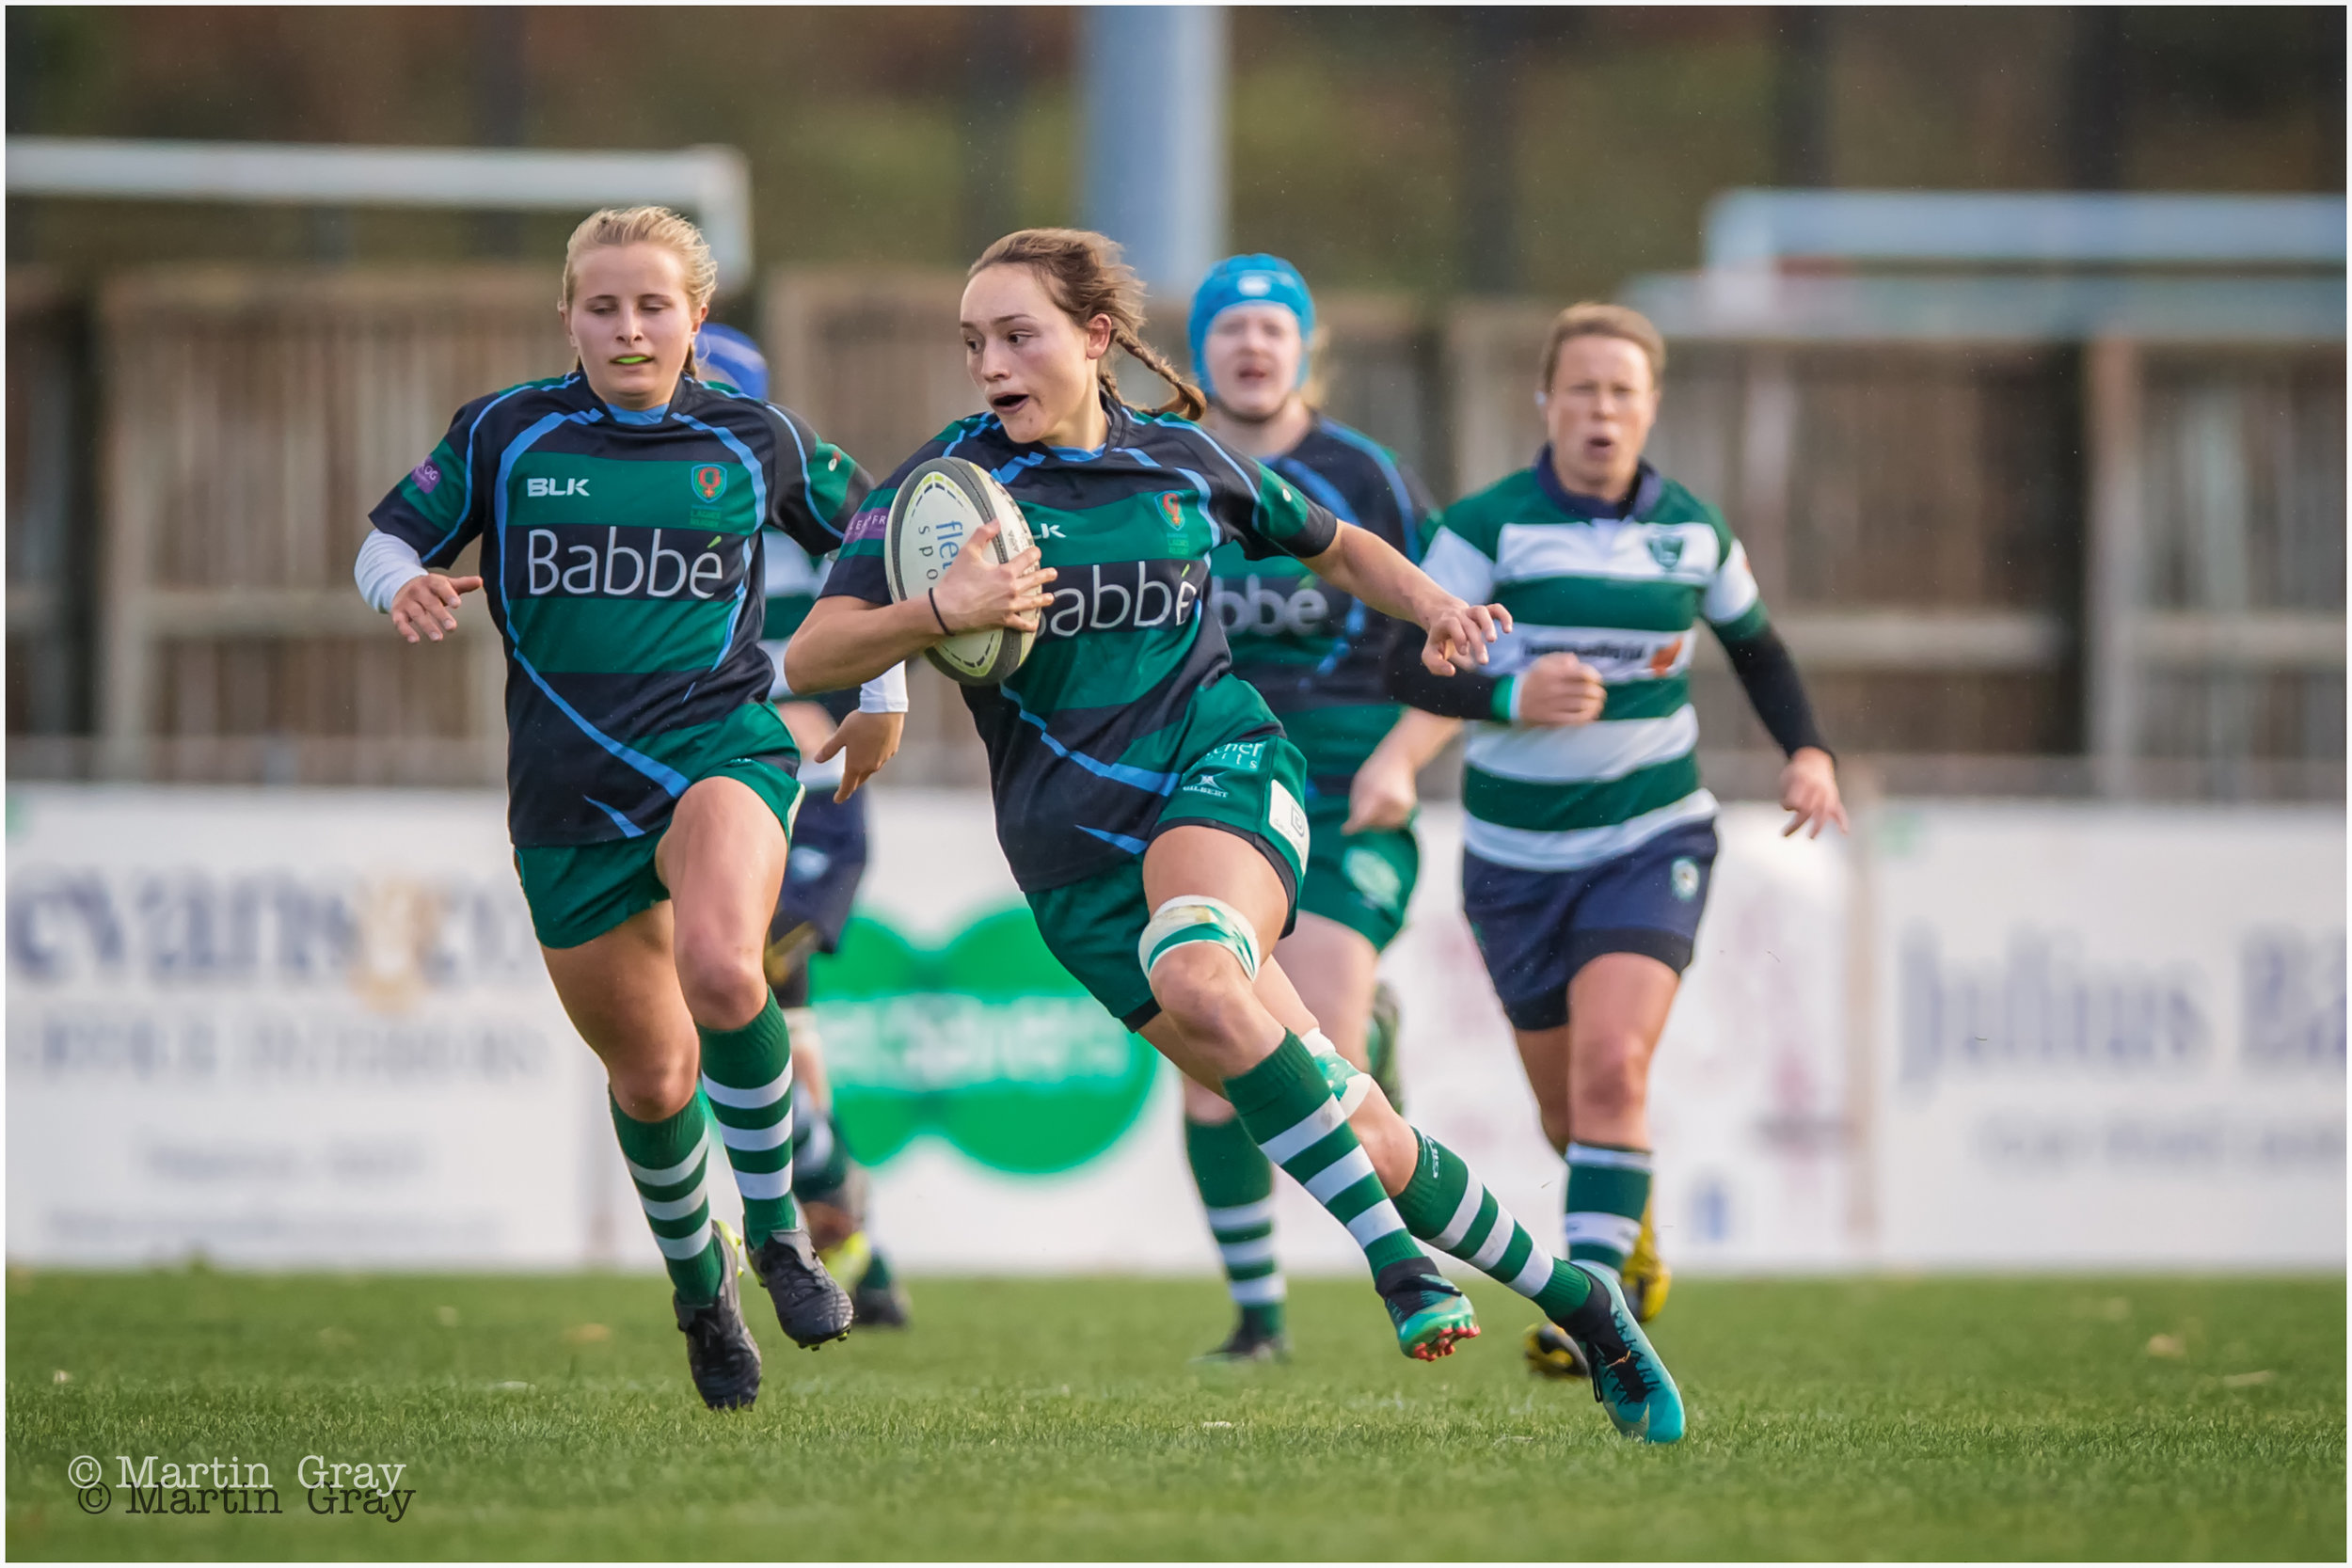 Guernsey Ladies v Reading Ladies played at Footes Lane on October 28th 2018… GLR winning 27-5… more to be added as they're processed!